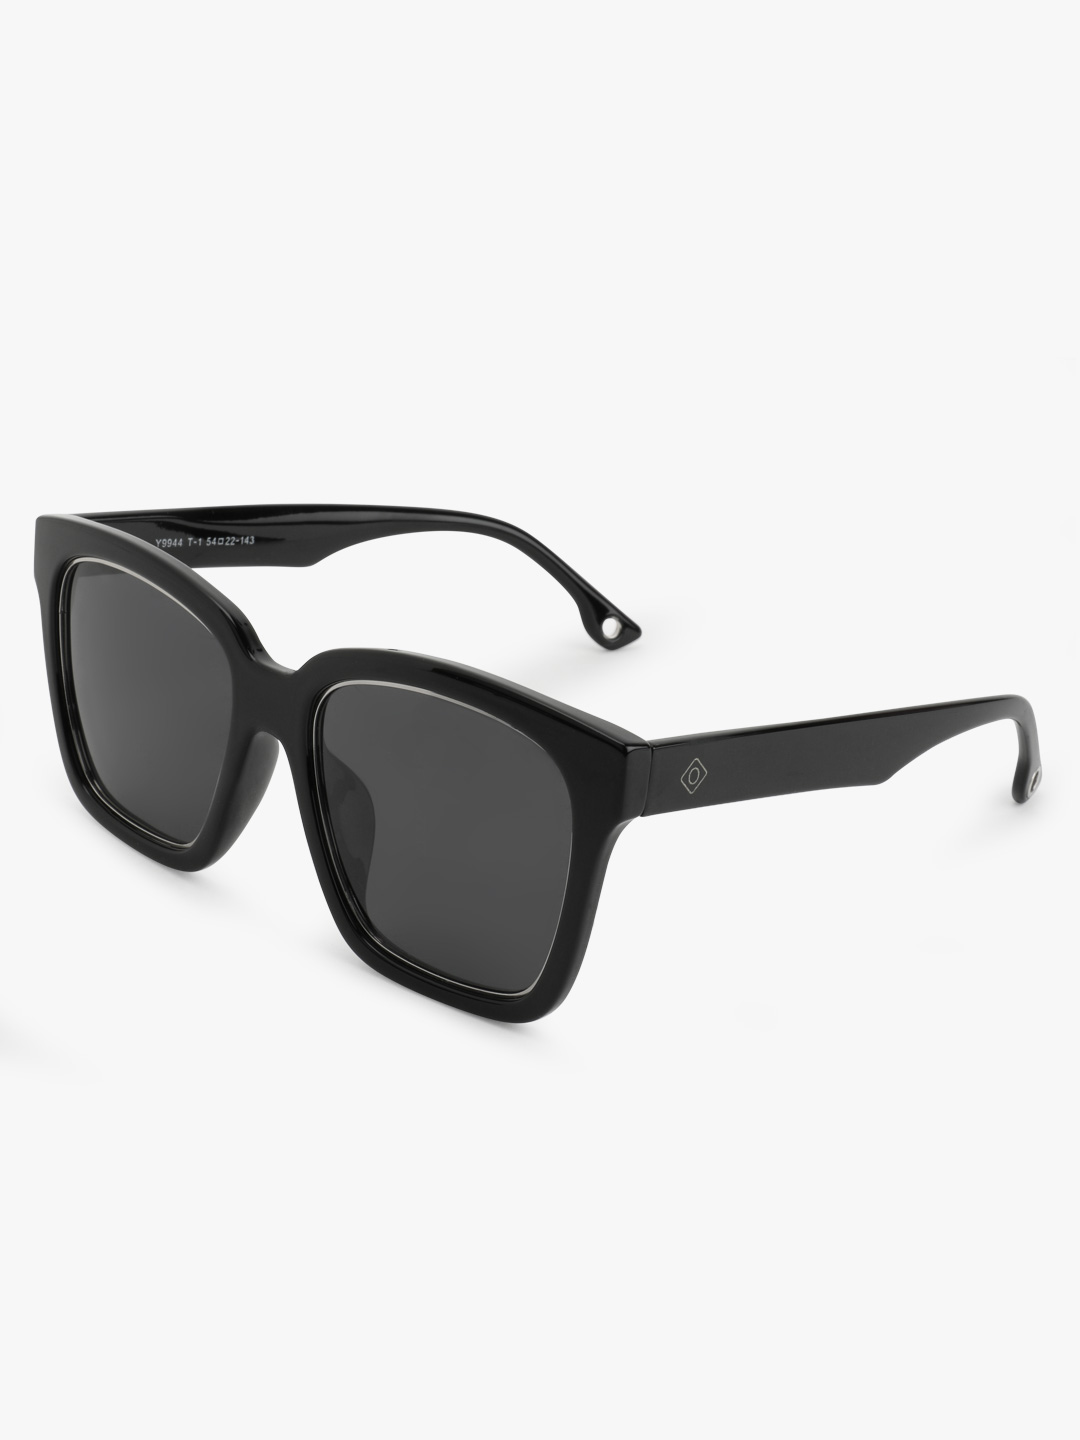 Sneak-a-Peek Black Mirrored Square Retro Sunglasses 1